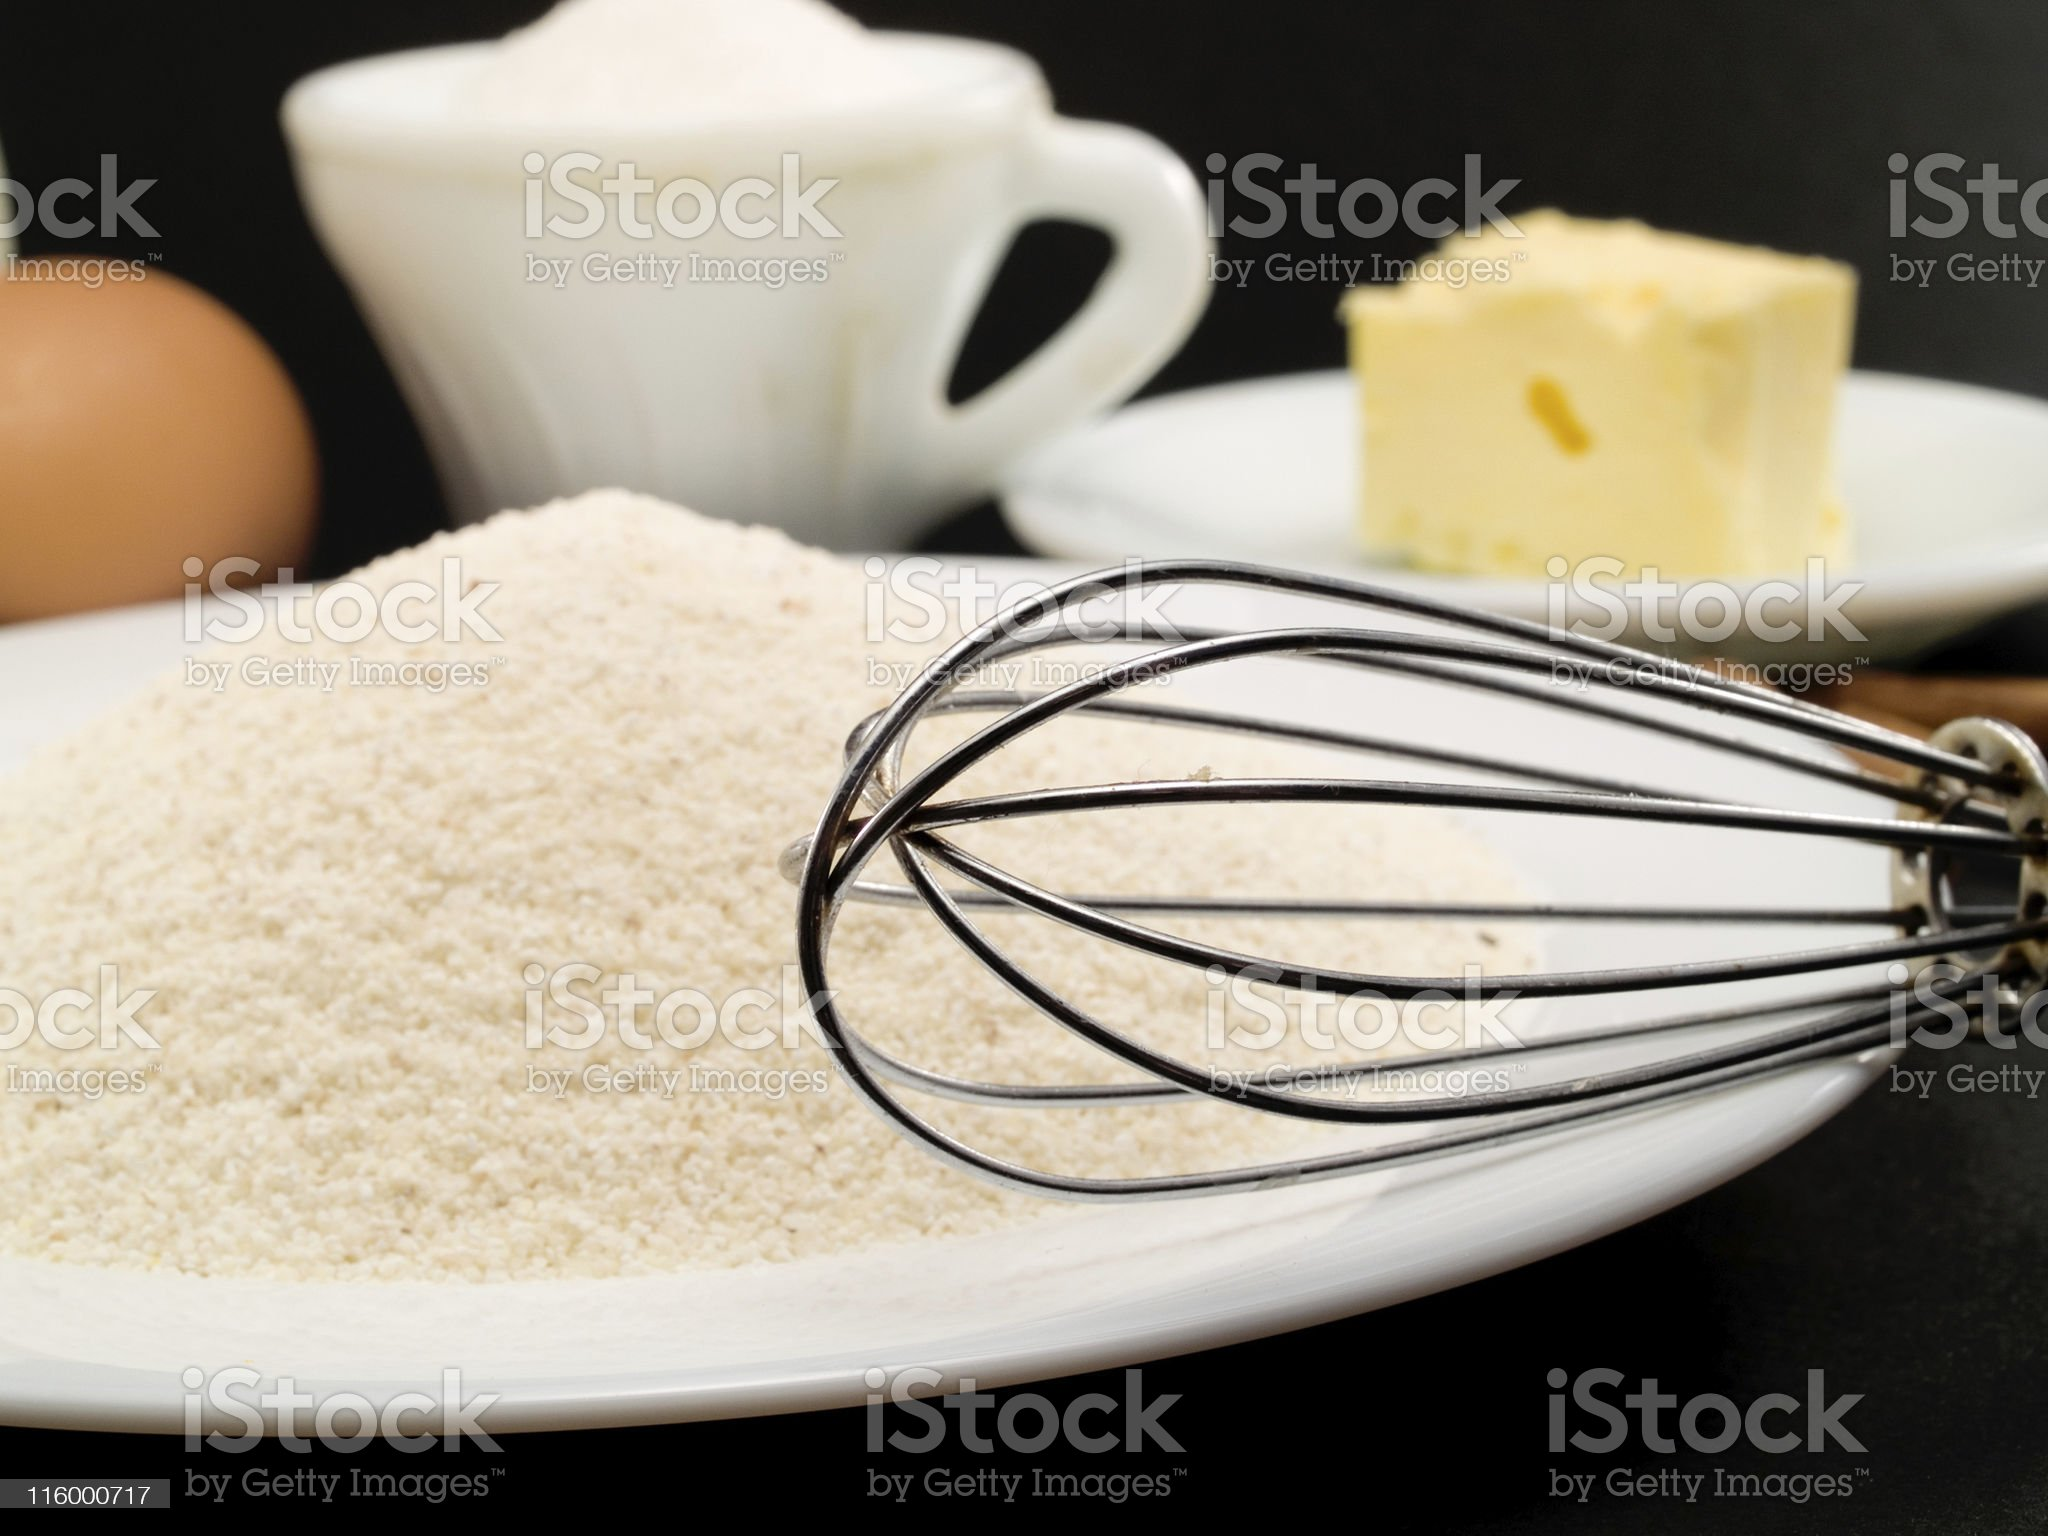 Preparing a Cake royalty-free stock photo